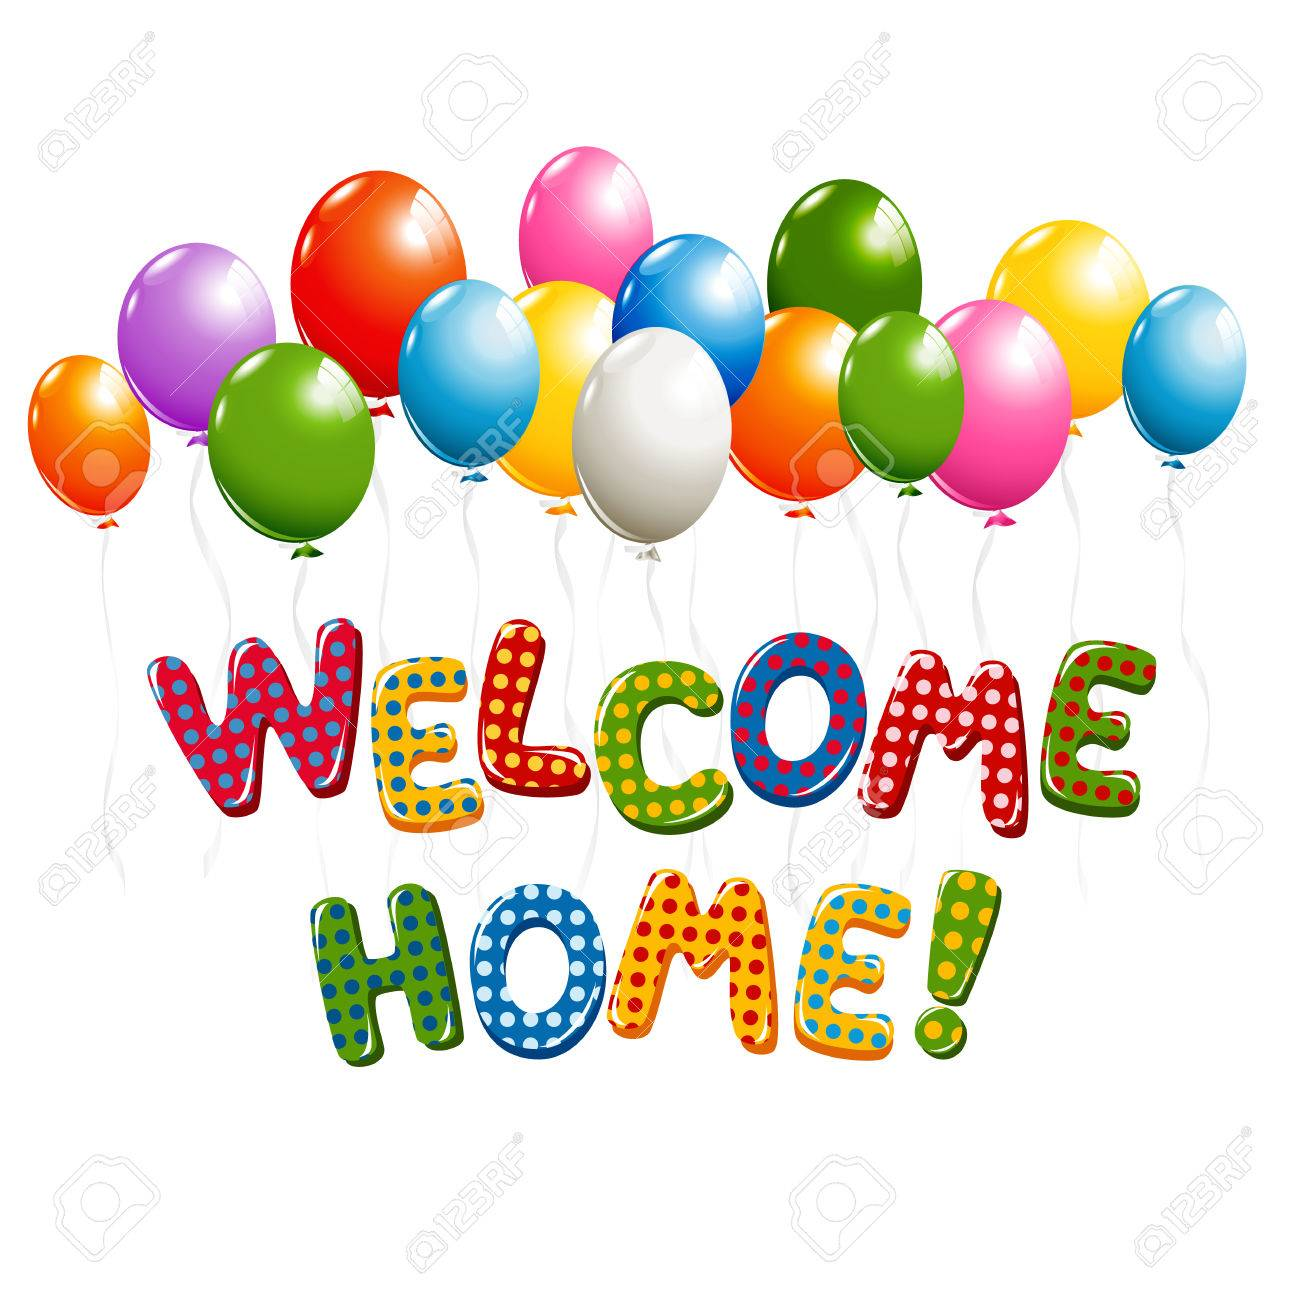 Welcome Home text in colorful polka dot design with balloons.